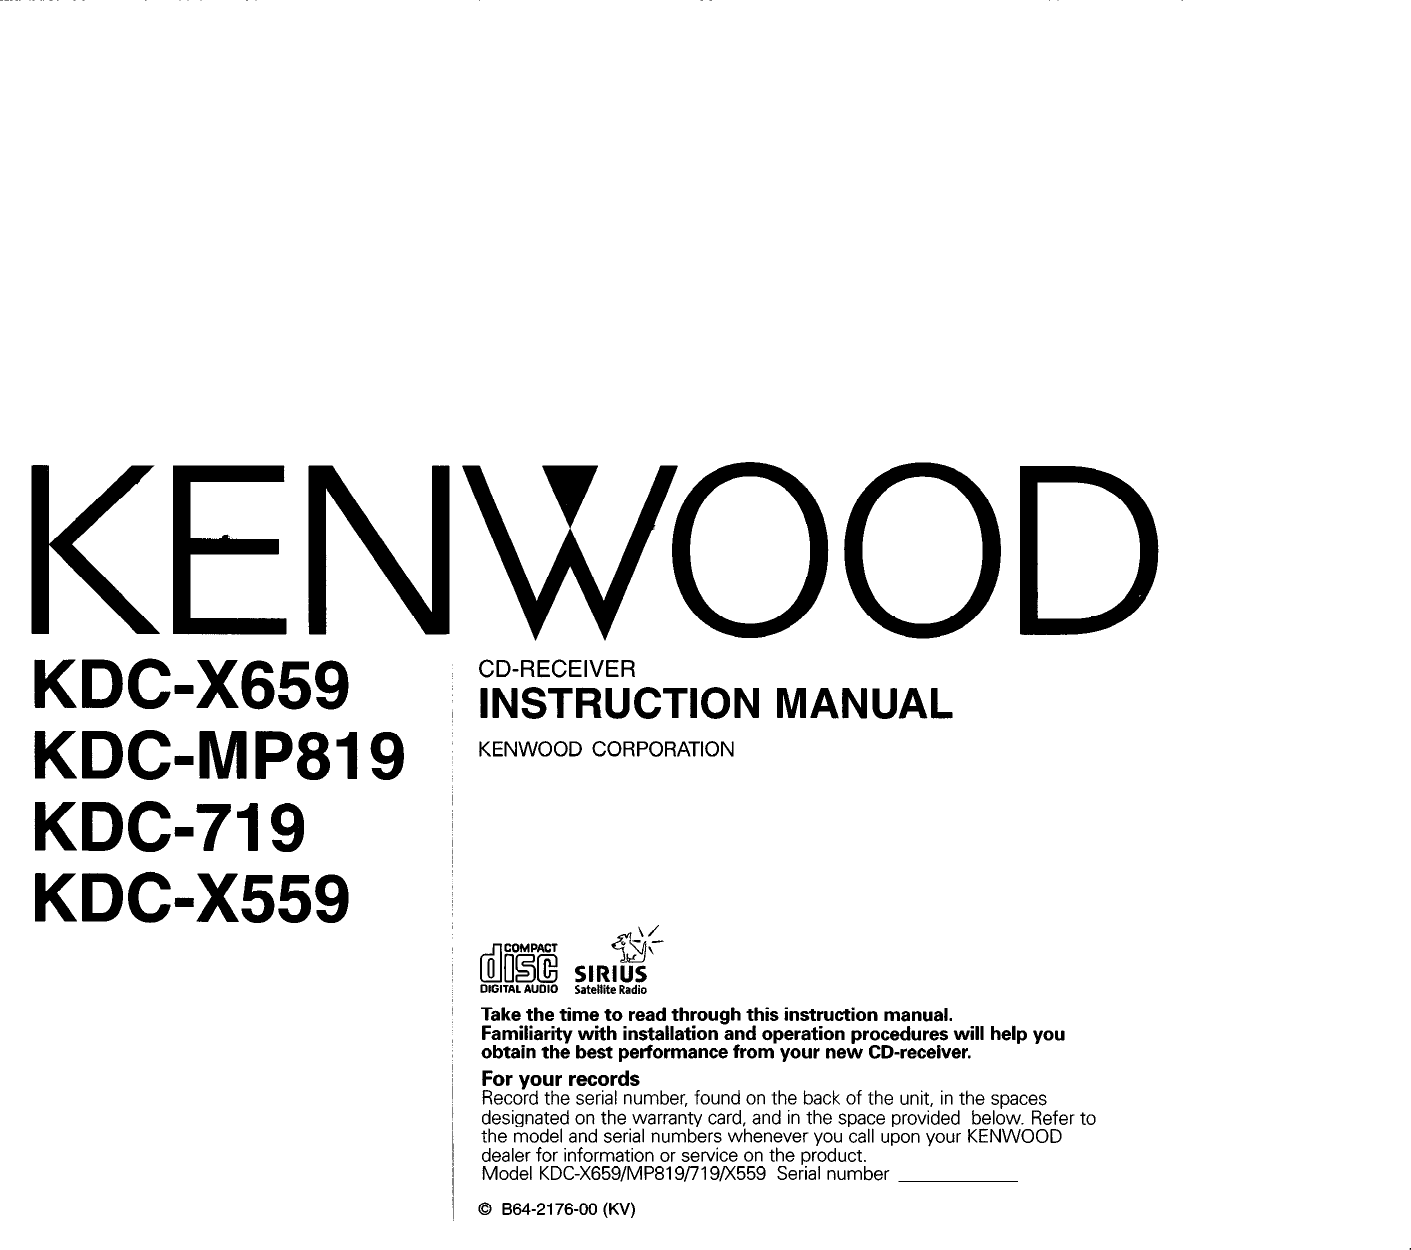 kenwood excelon kdc x559 users manual  usermanual.wiki